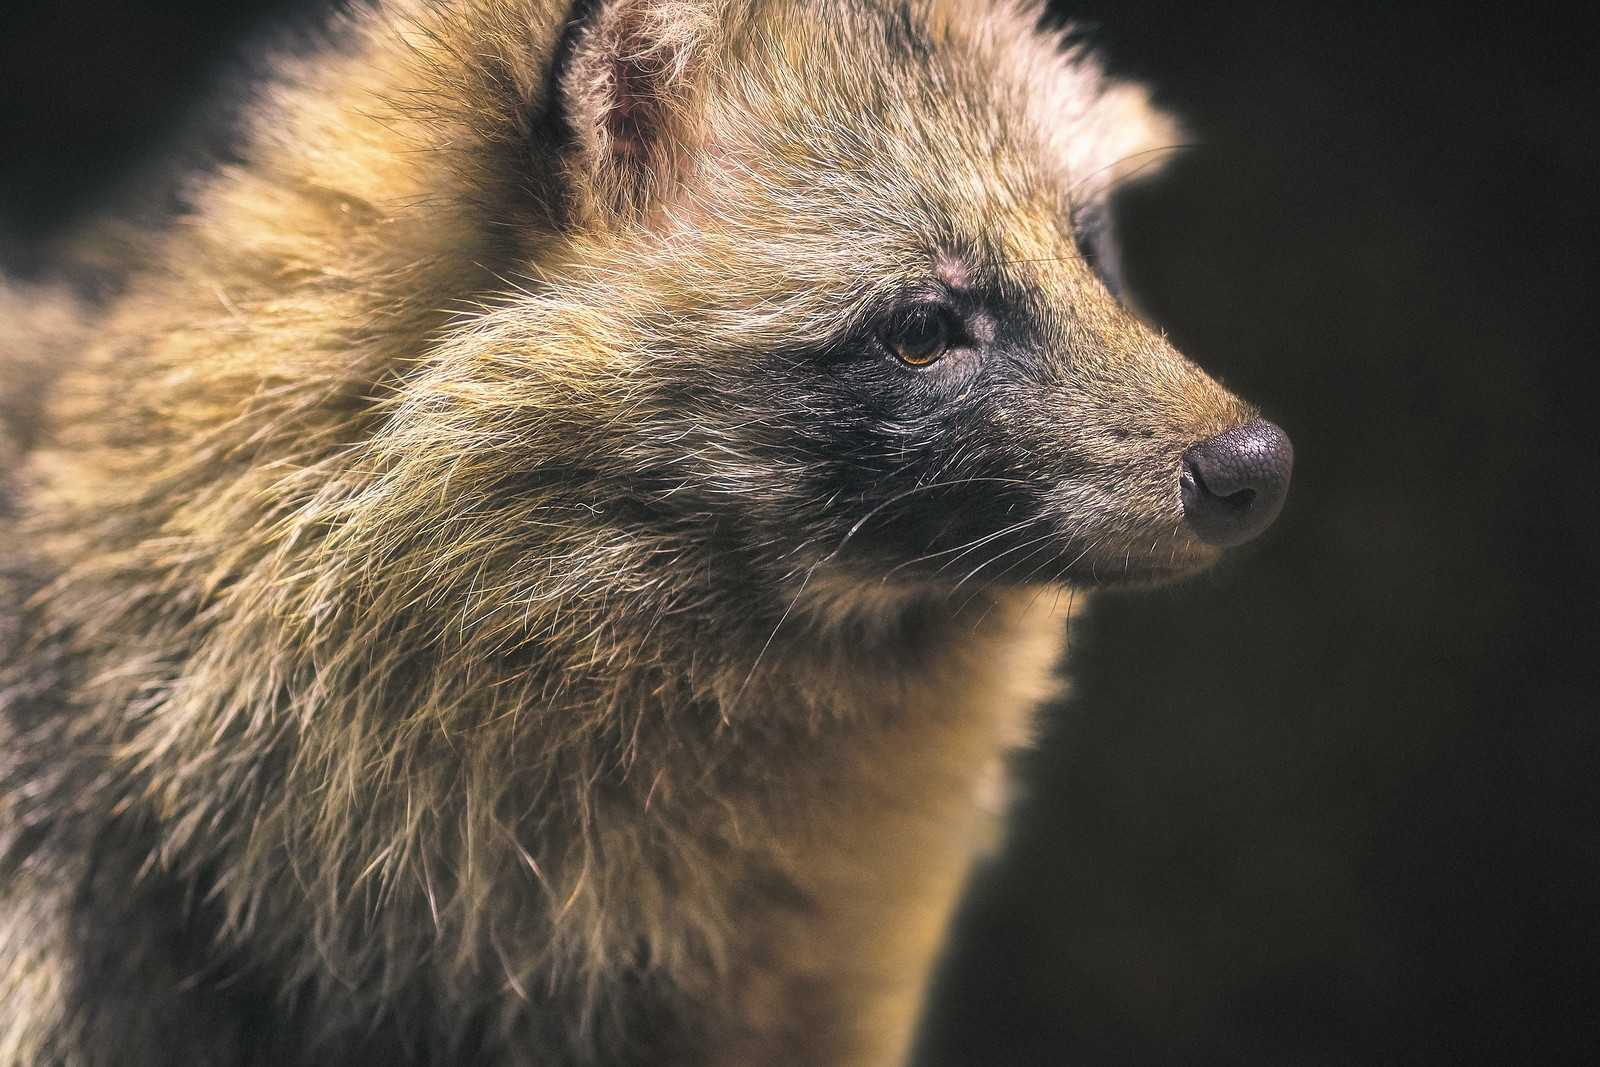 Closeup of a Raccoon Dog